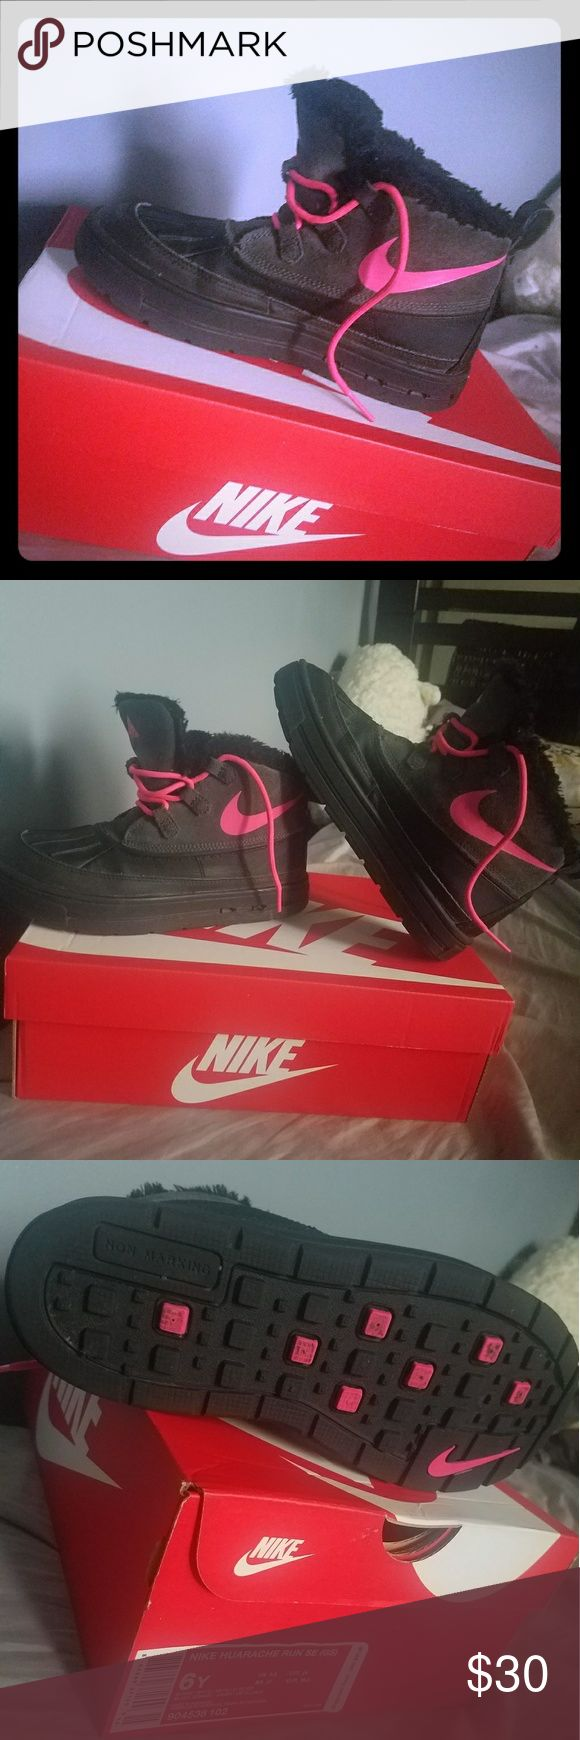 NICE nike ACG boots size 4.5y Gently worn pink and black Nike boots Nike ACG Shoes Boots